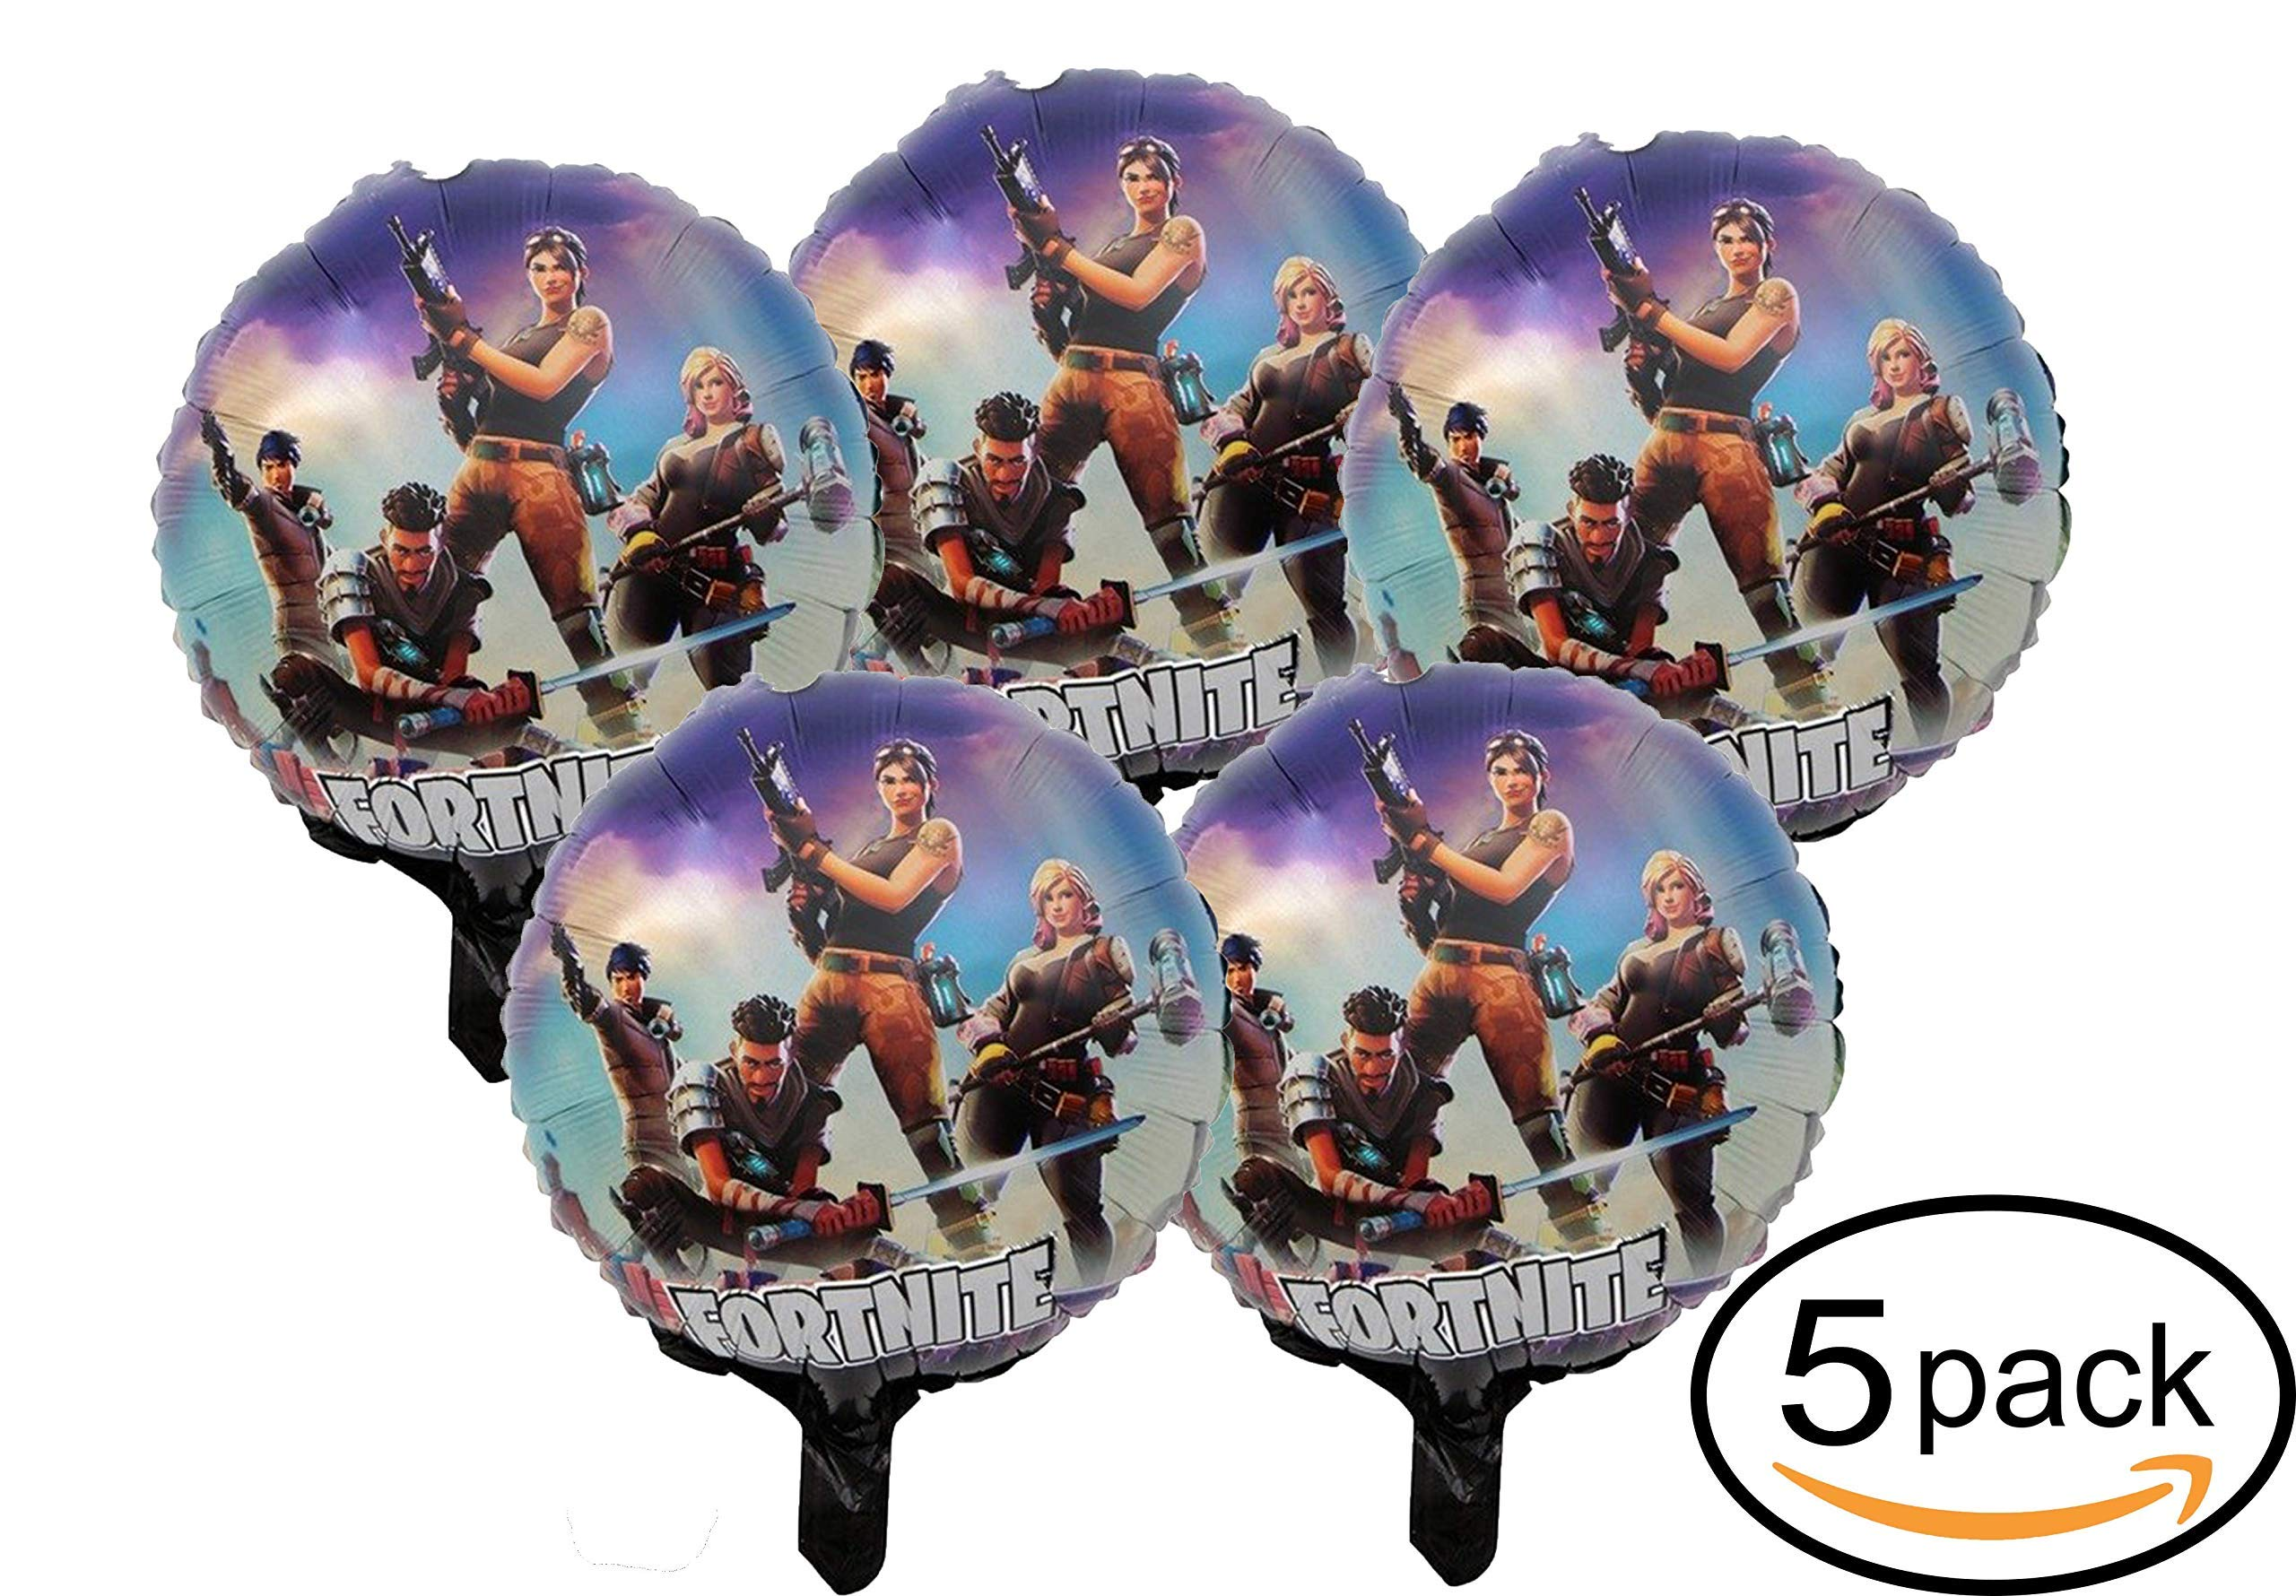 Fortnite Balloons Birthday Party Supplies Bundle 18 Inch Kids' Gaming Decoration 5 Pack Double Sided Balloons